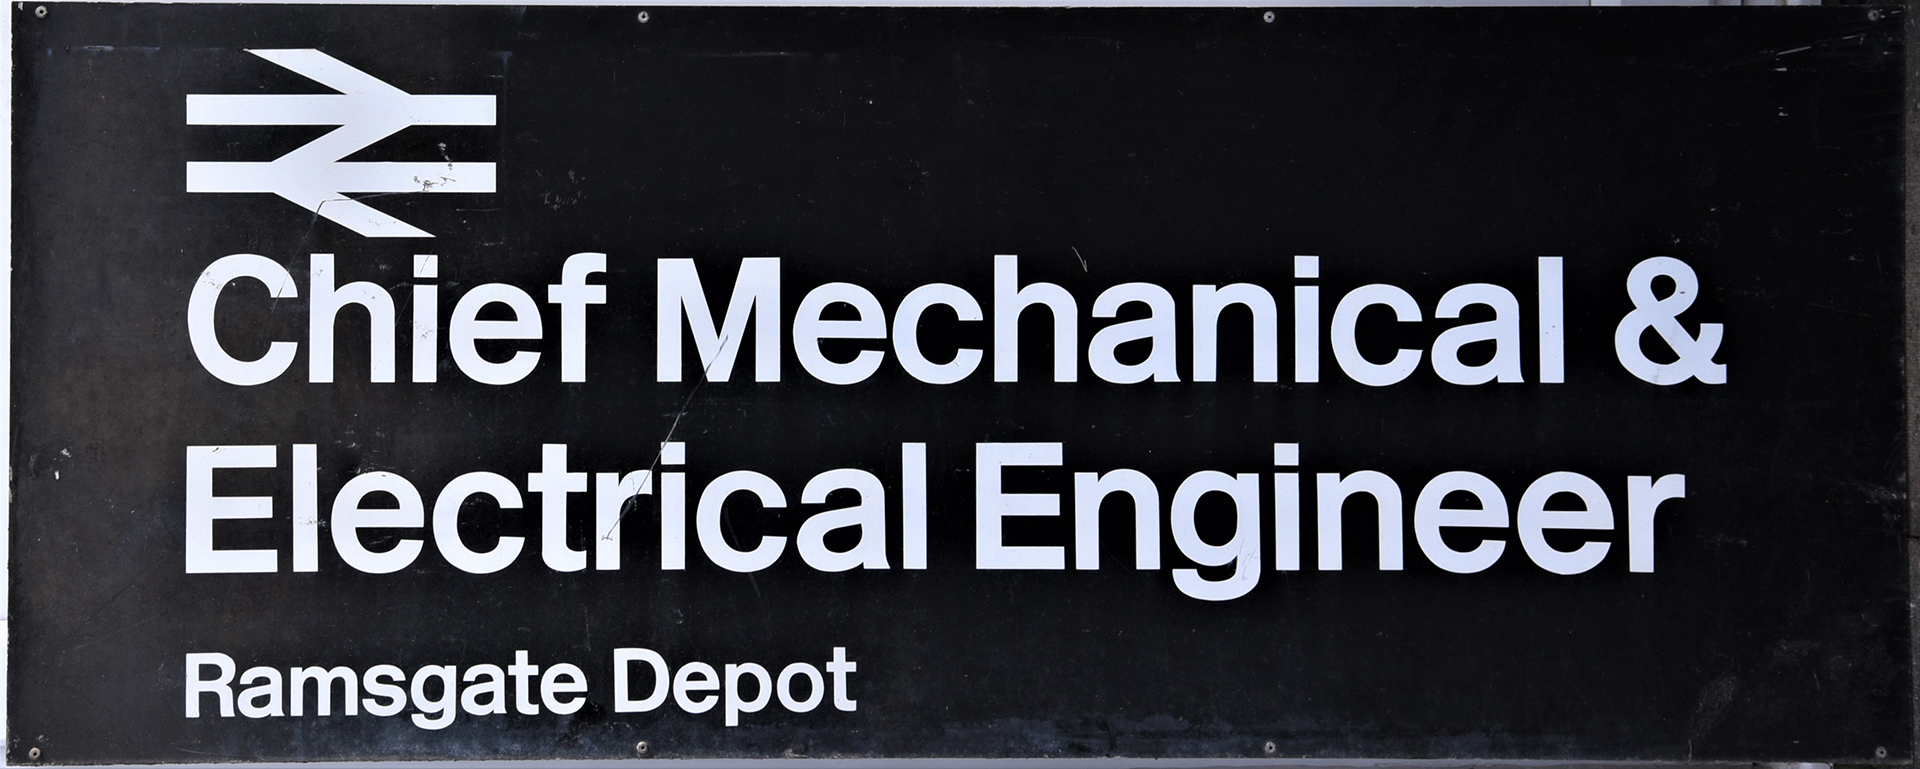 Modern Image Railway Sign. CHIEF MECHANICAL And